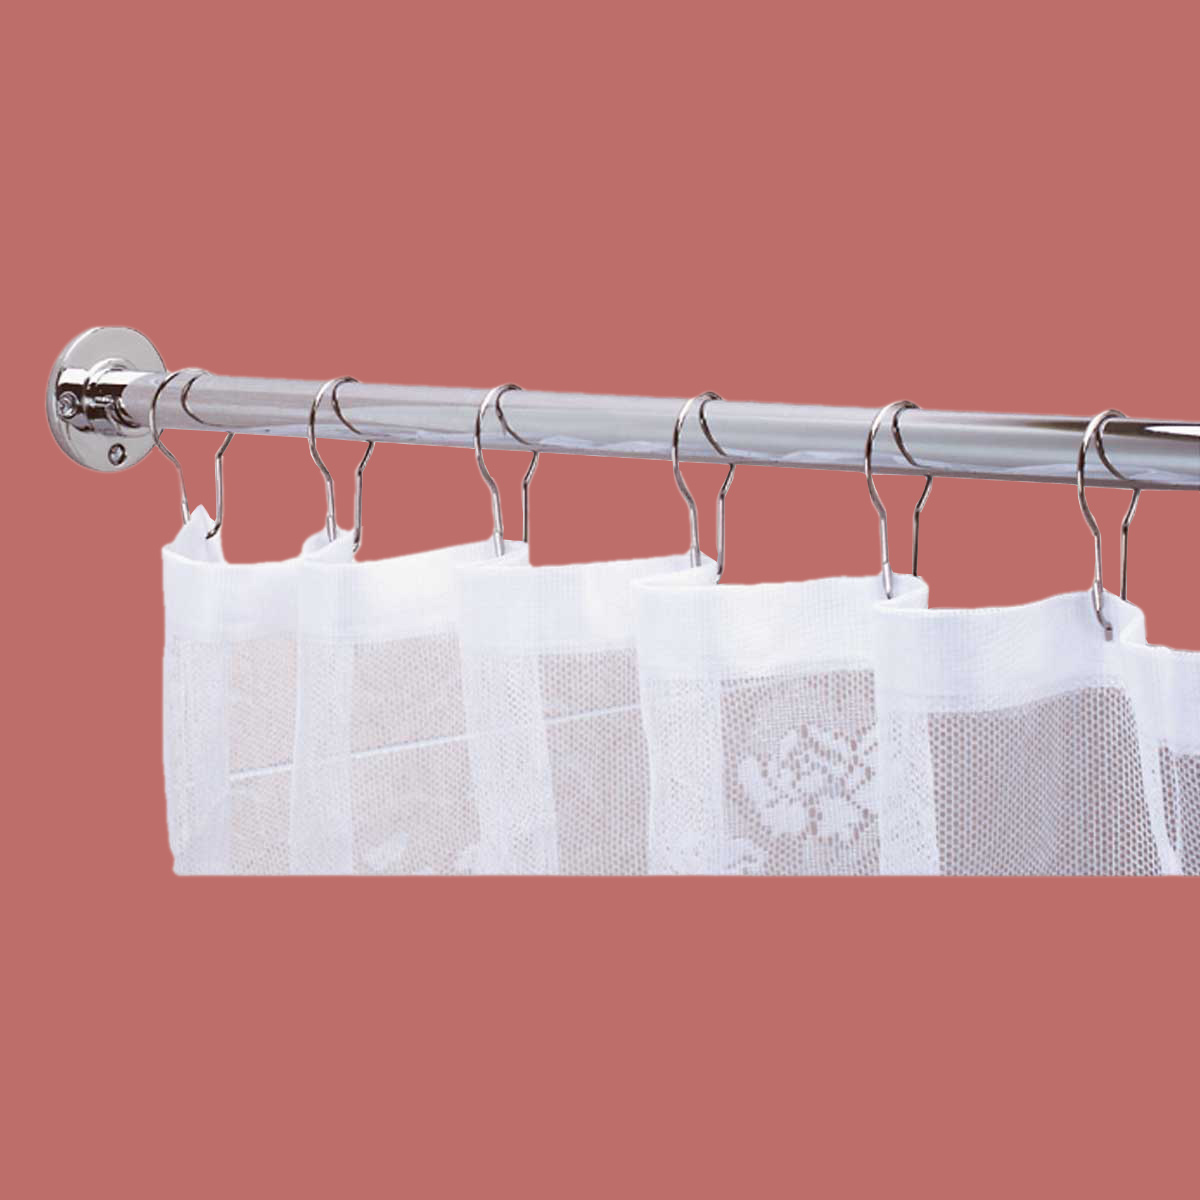 Shower Curtain Rod Bright Chrome 6 Feet Long